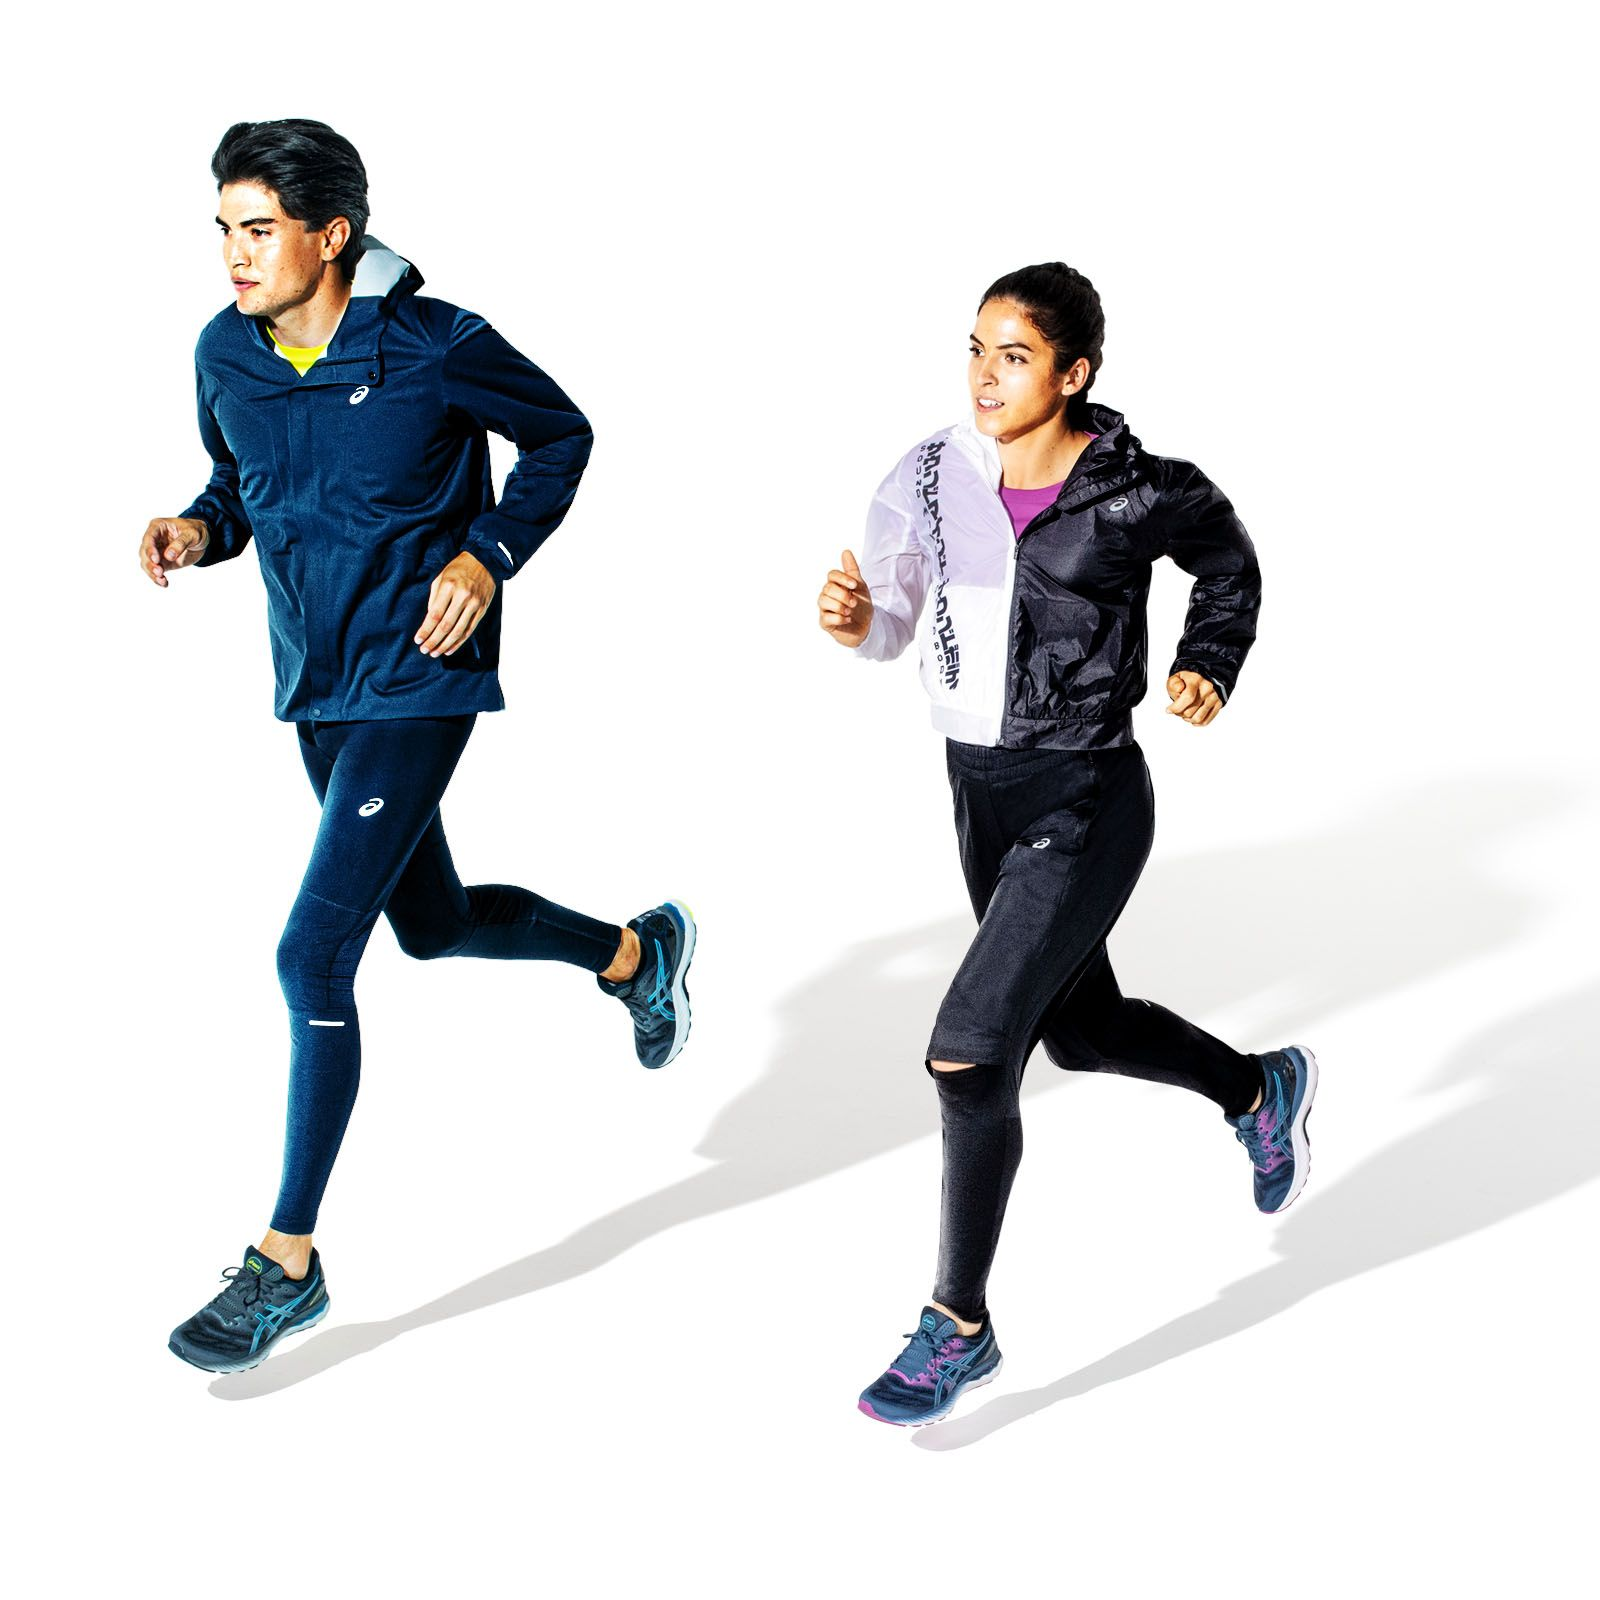 Runners wearing the new GEL-NIMBUS™ 23 shoes